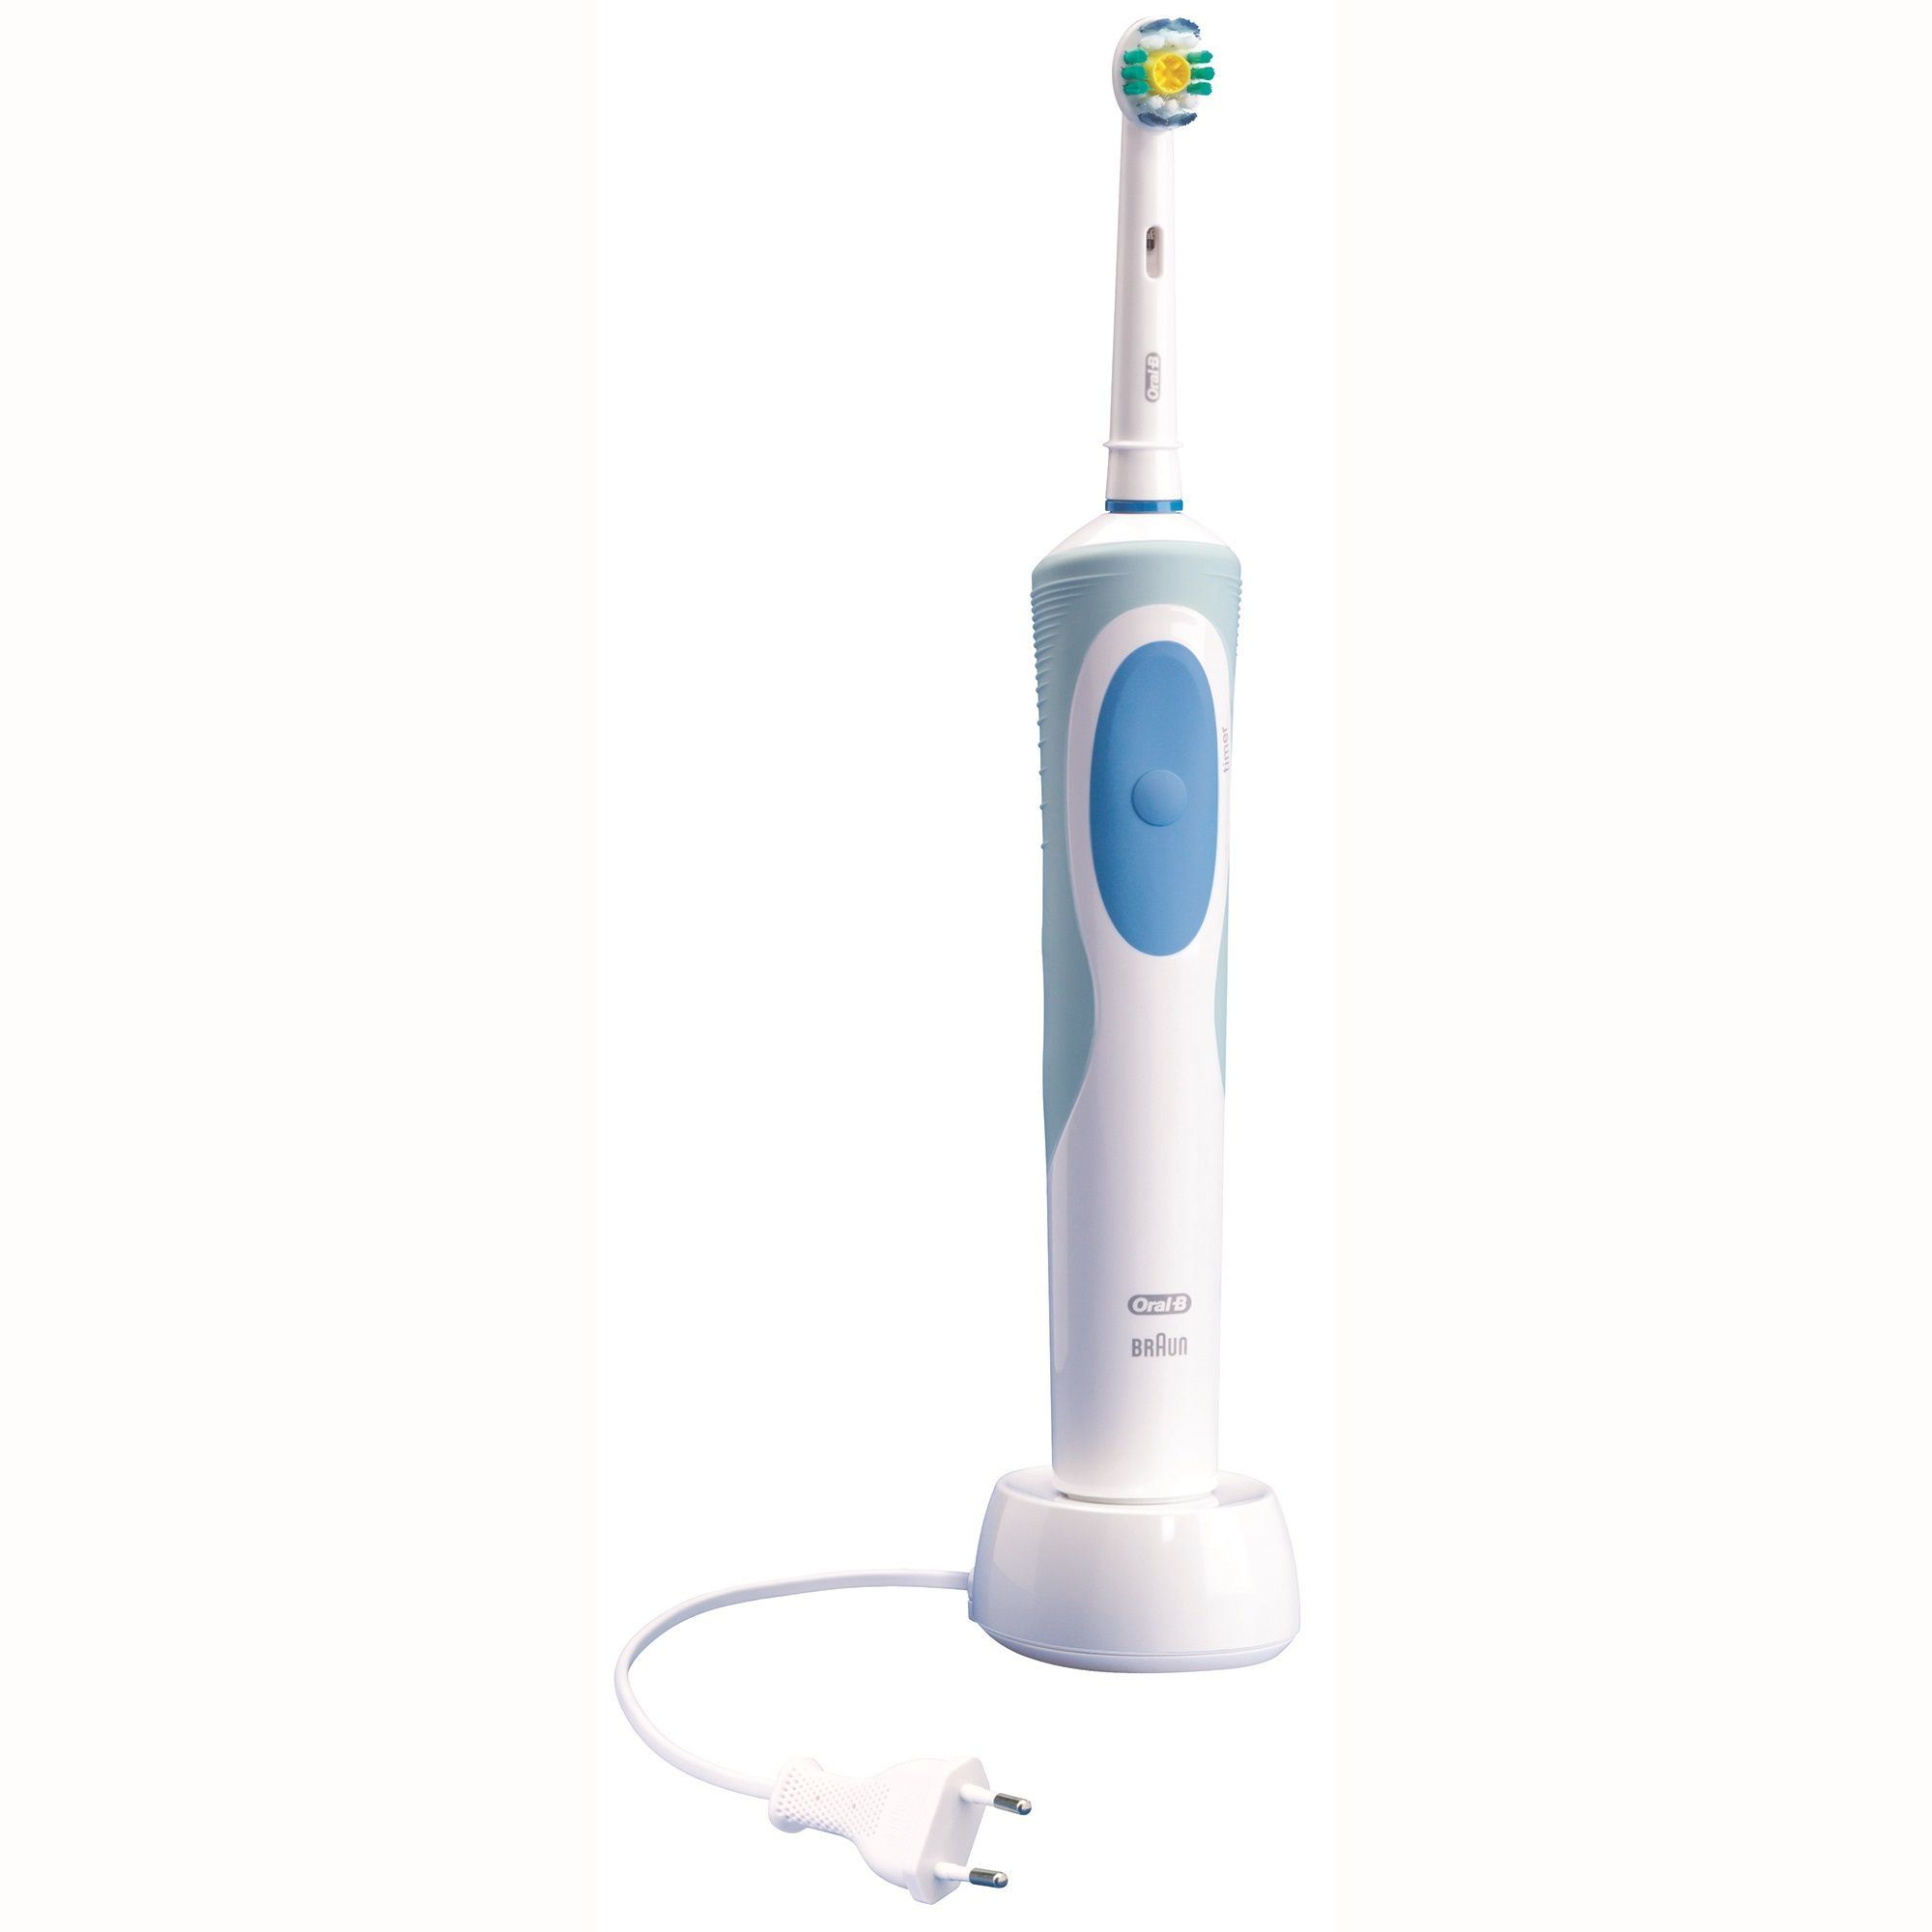 Product Description. The Oral-B PRO SmartSeries electric toothbrush with Bluetooth is the world's first of its kind with Bluetooth orimono.gaoth communication allows the brush to connect with your Oral-B App to provide real time brushing guidance that can be Reviews: 3.